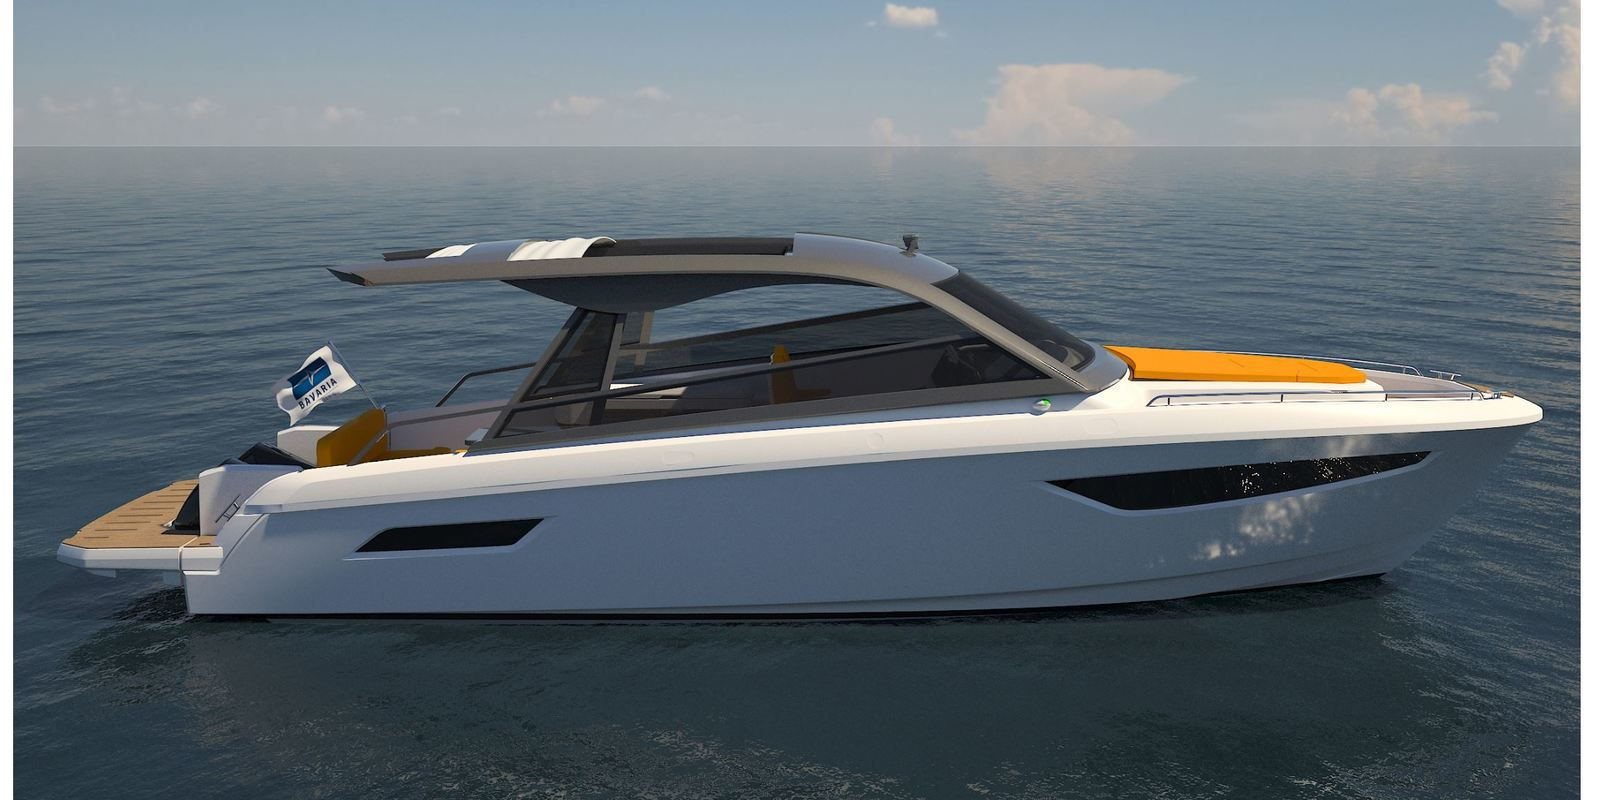 First visuals of Bavaria Vida 33, the first outboard boat from the German shipyard